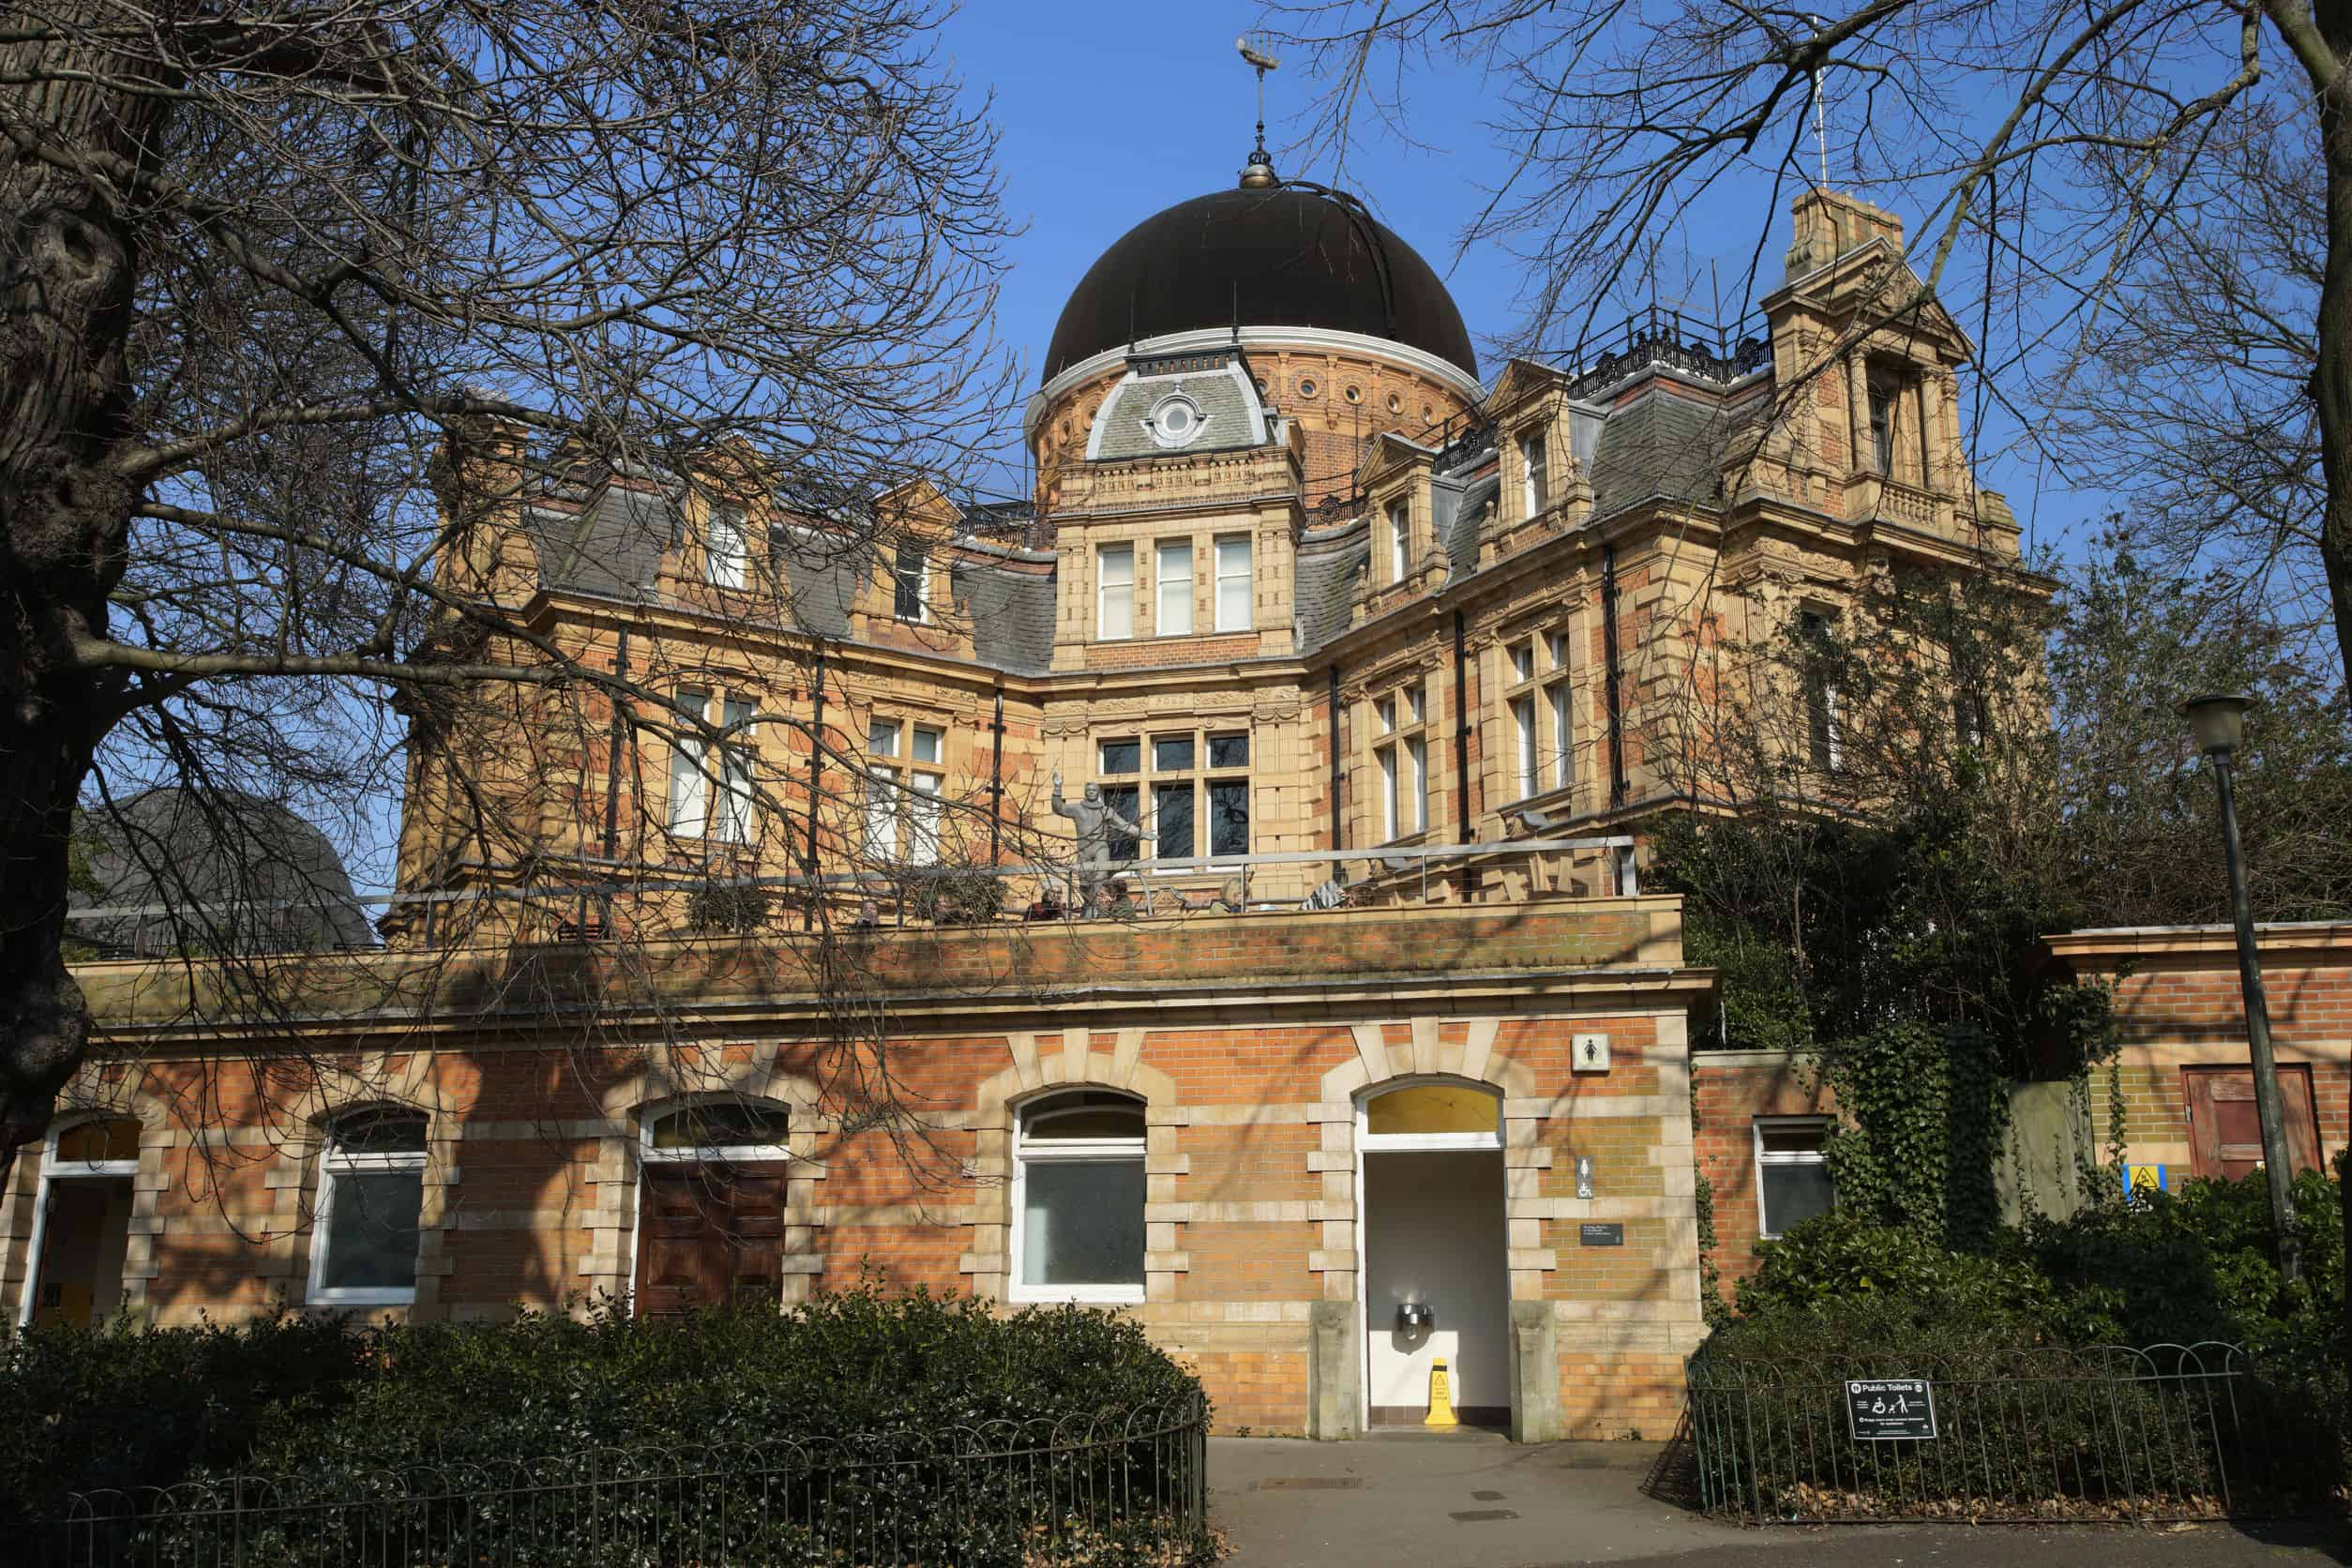 55919549 - london , uk - march 17, 2016: outside view of the royal observatory, built in 1676, on a hill in greenwich park, worked in the history of astronomy and navigation.